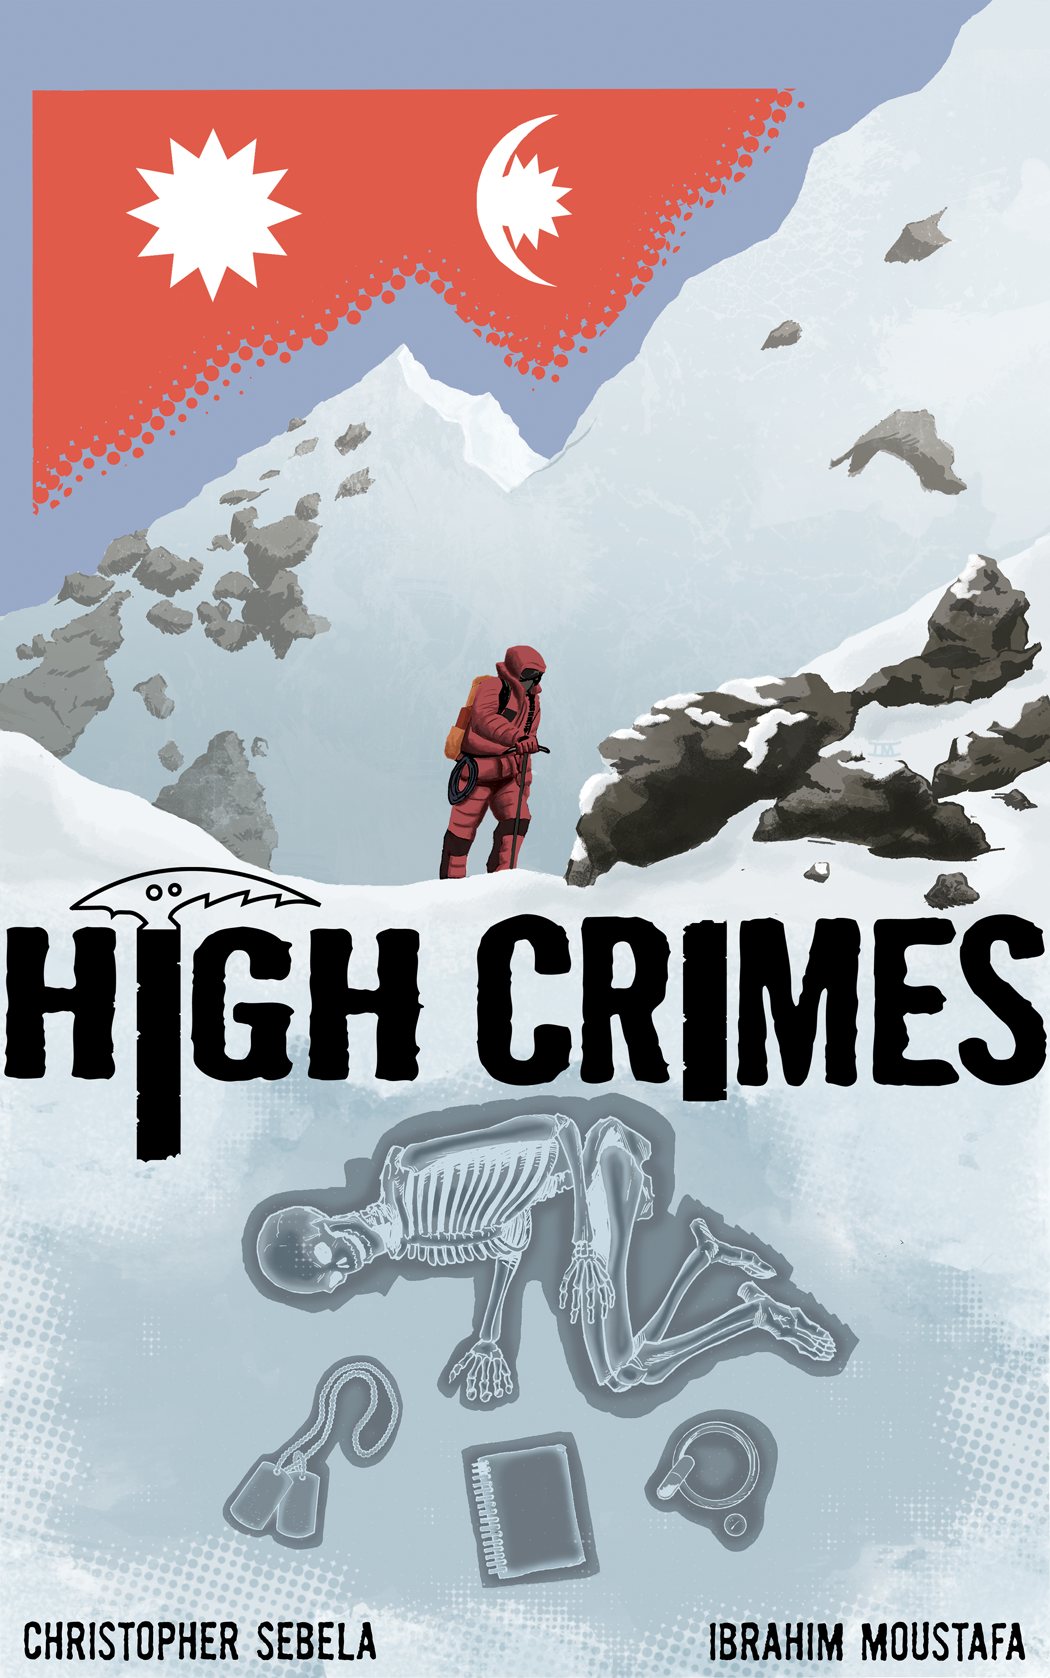 0 Days. HIGH CRIMES is officially a real thing, no longer a figment of our collective imagination, it's on sale and available right  here .   A few things to note:    1. HIGH CRIMES is a digital-only comic from Monkeybrain Comics. It's available exclusively thru Comixology and your 99 cents allows you to read it on your desktop, laptop, tablet or phone (where technologically applicable).    2. It's 18 pages total, including my blathering essay and backmatter.   3. Buying with the link above ( remember that? ) directly from Comixology's website sends more money our way. Buying via iTunes is fine too, though. Whatever you wanna do, we want you to do.   4. We do this book for free. The only money we stand to see from it is from  sales . This is about as direct a market as you can get. No pre-orders, no running out of print, no hindrance to buying a comic from the bathroom at 3 in the morning if you feel like it.   It's just us making our book and you buying it, sort of like the post-apocalypse economy, but without the unpleasantness of marauders.   5. If you like it, tell some people, maybe? I hear social networking is a good way to do that, if you're into that. Also? (so pushy, I know) if you could rate it on the  Comixology website , that might help too. Who knows? Basically, if you wanna help soldier the cause, we love you in advance.    Ibrahim and I met on my birthday, back in July, by a totally random set of pancake-based circumstances, and a week later we were working on the book in earnest, Ibrahim starting on character sketches while I pounded my head against a script I'd been writing in my head for the last 2 years and now had to somehow make a real thing. More than 6 months later, here we are, with No. 1 on sale the same day we're putting No. 2 to bed. It's been exhausting, but more than that, it's been awesome.    I haven't slept in like 20 hours, so hopefully that ineptly-told hard luck tale inspires you to  drop 99 cents  on our book, a book even I (after much freaking out and yard barfing) think is pretty good. We're only getting better as we go.